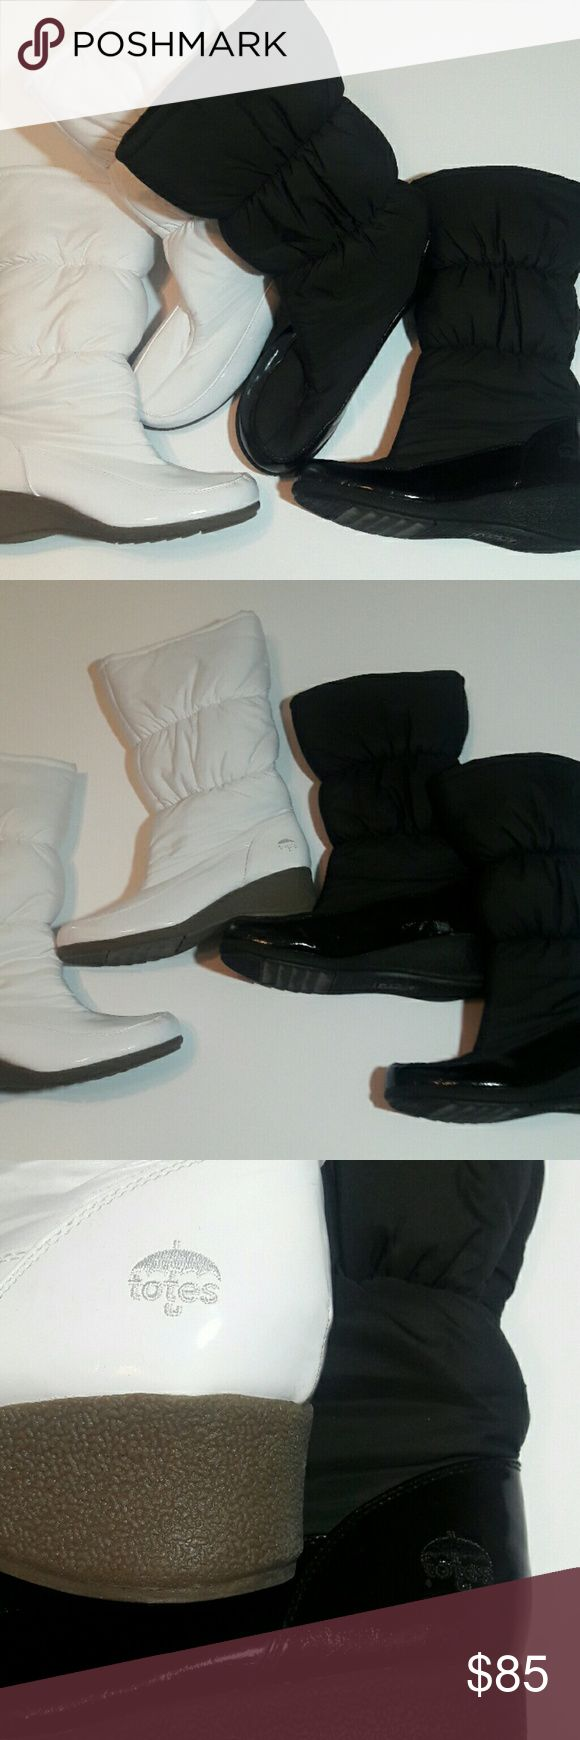 TOTES All Weather Footwear TOTES All Weather Footwear BRAND. Selling as set. Both Like New  ( Worn twice) Both Size 11. Material posted in photo. Not too familiar with this Brand. White Boots with Tan sole.  BLACK ON black boots. TOTES All Weather Footwear Shoes Winter & Rain Boots